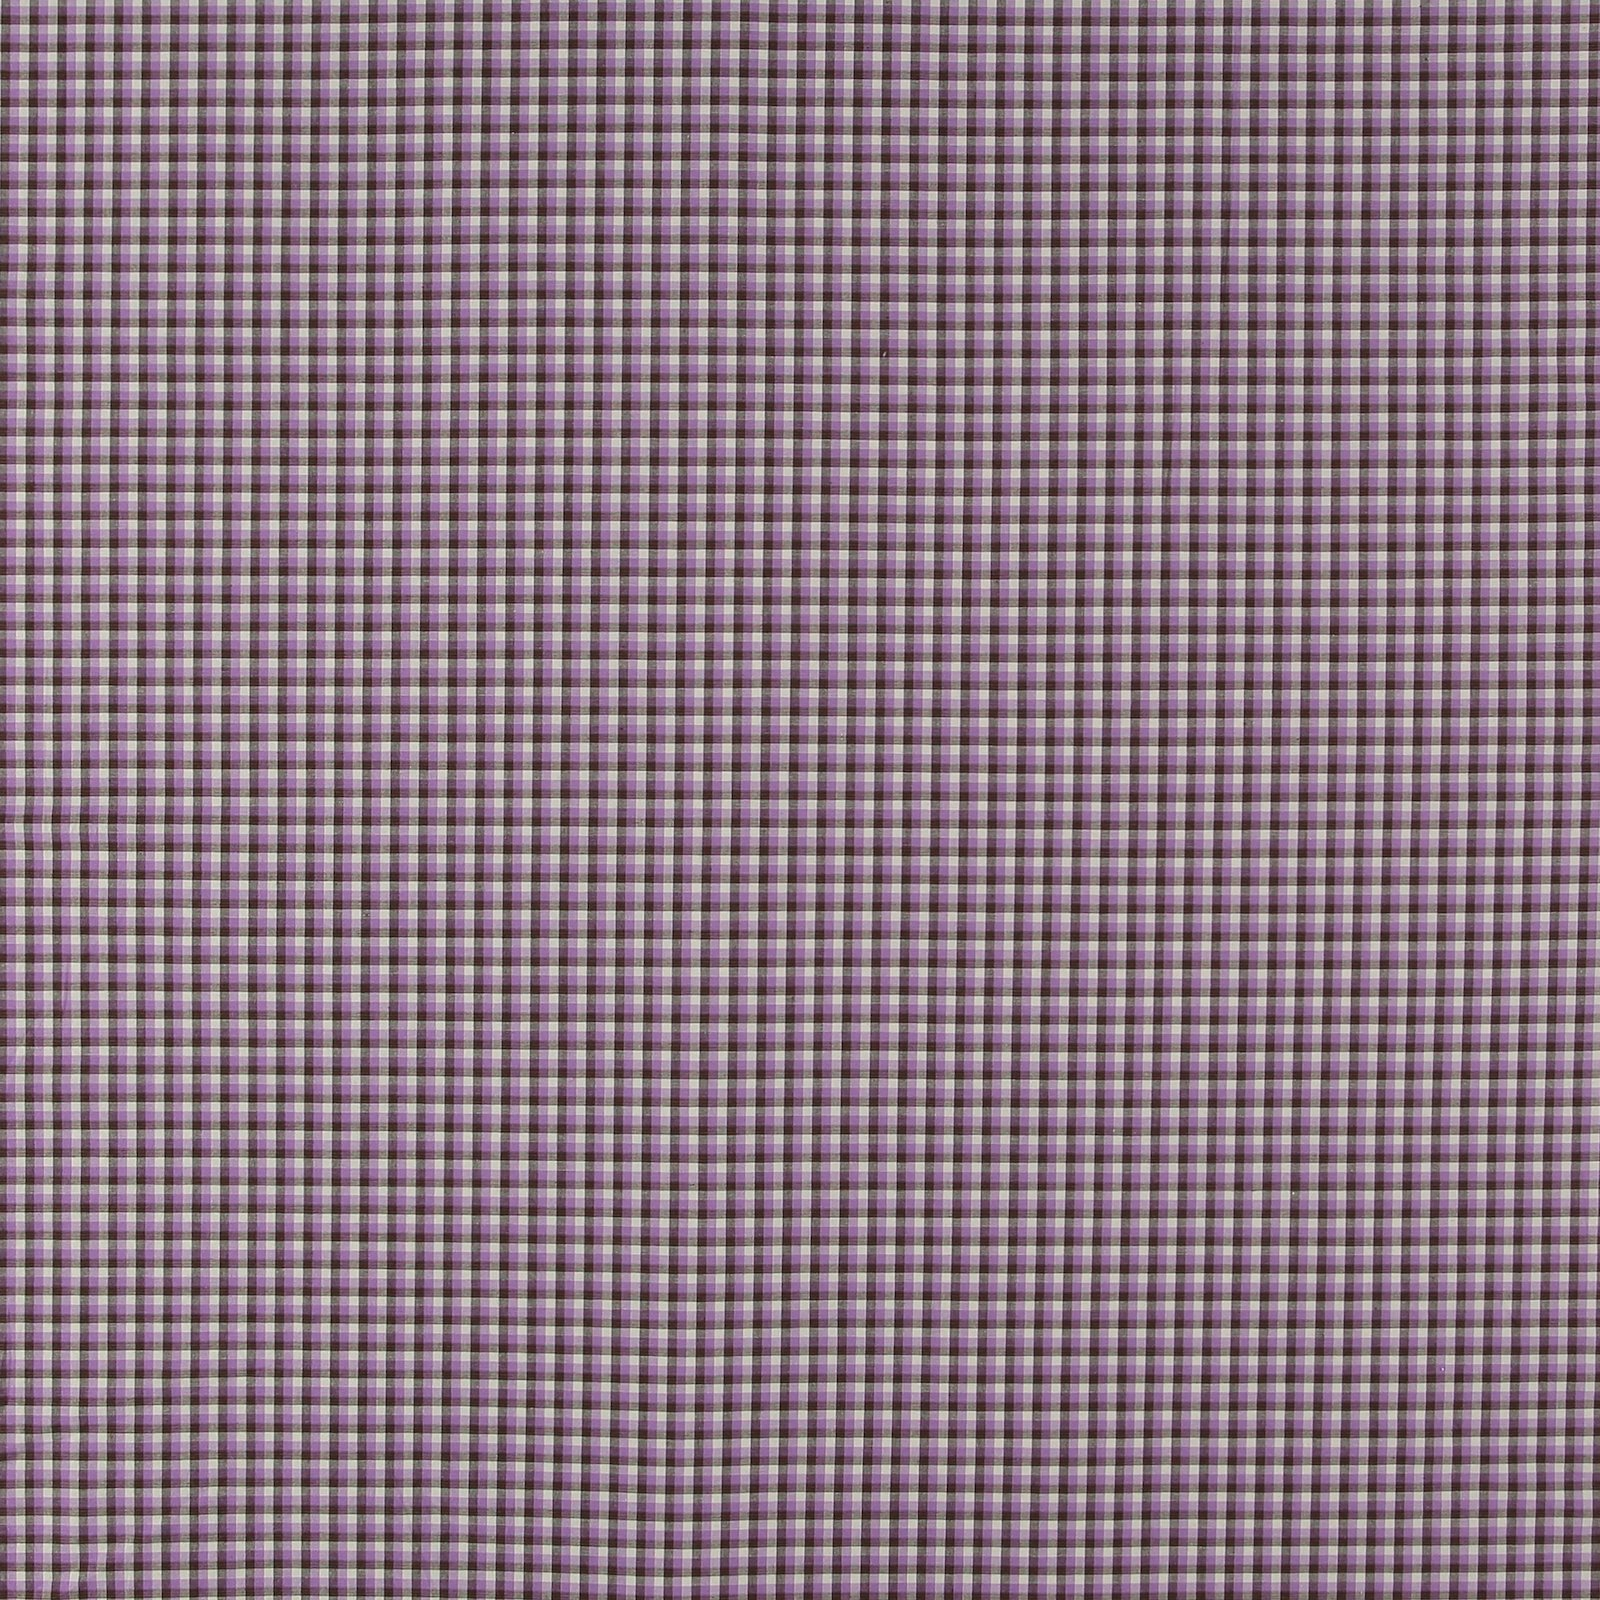 Woven YD check stretch purple/brown/sand 501795_pack_sp